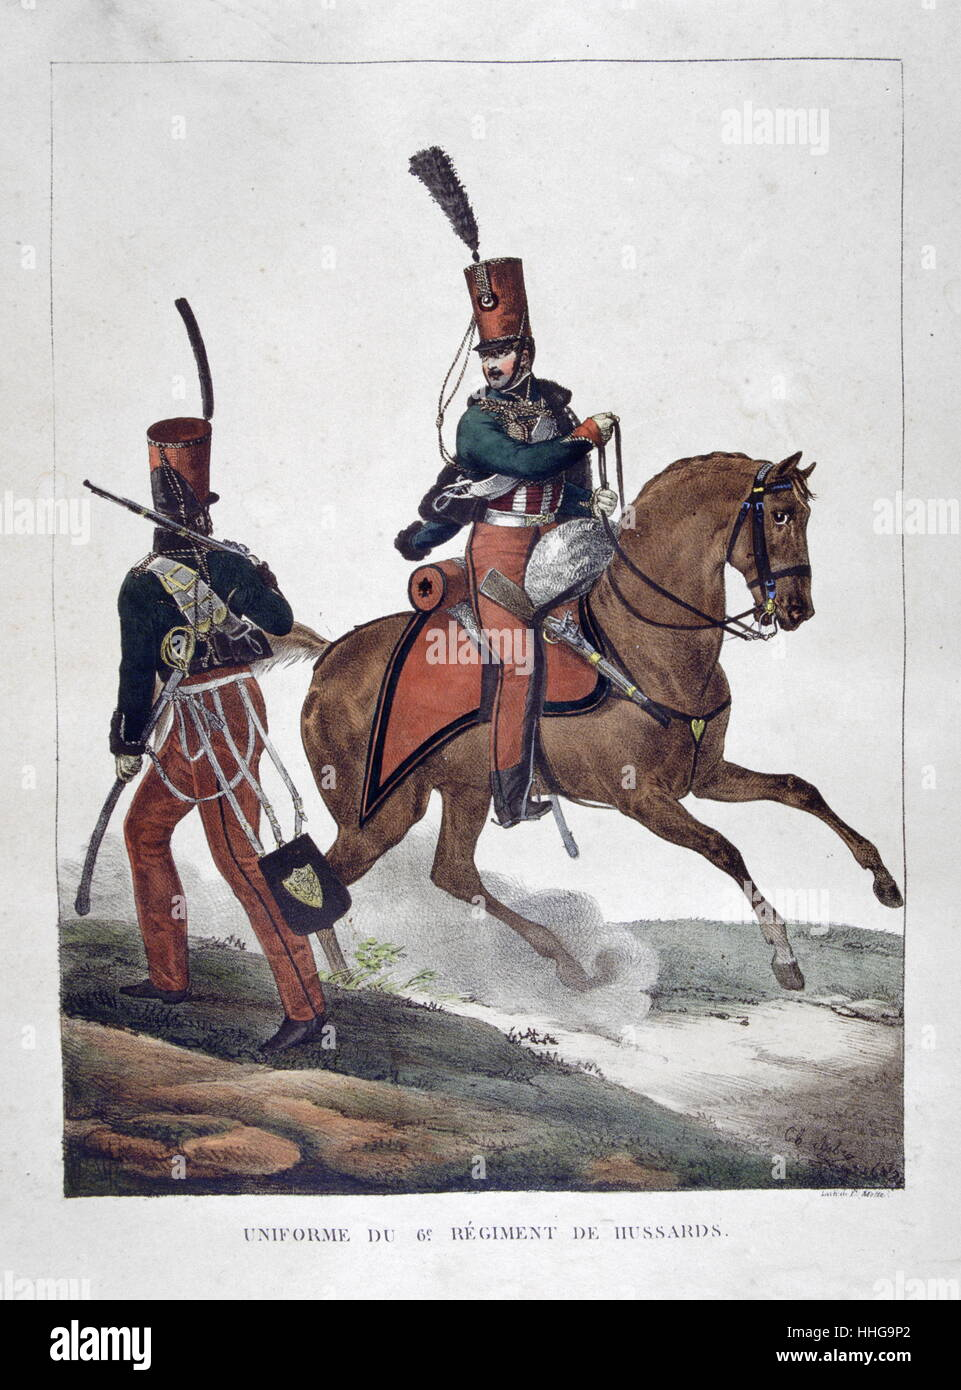 Uniformed cavalryman of the French Hussars Regiment, 1823 - Stock Image